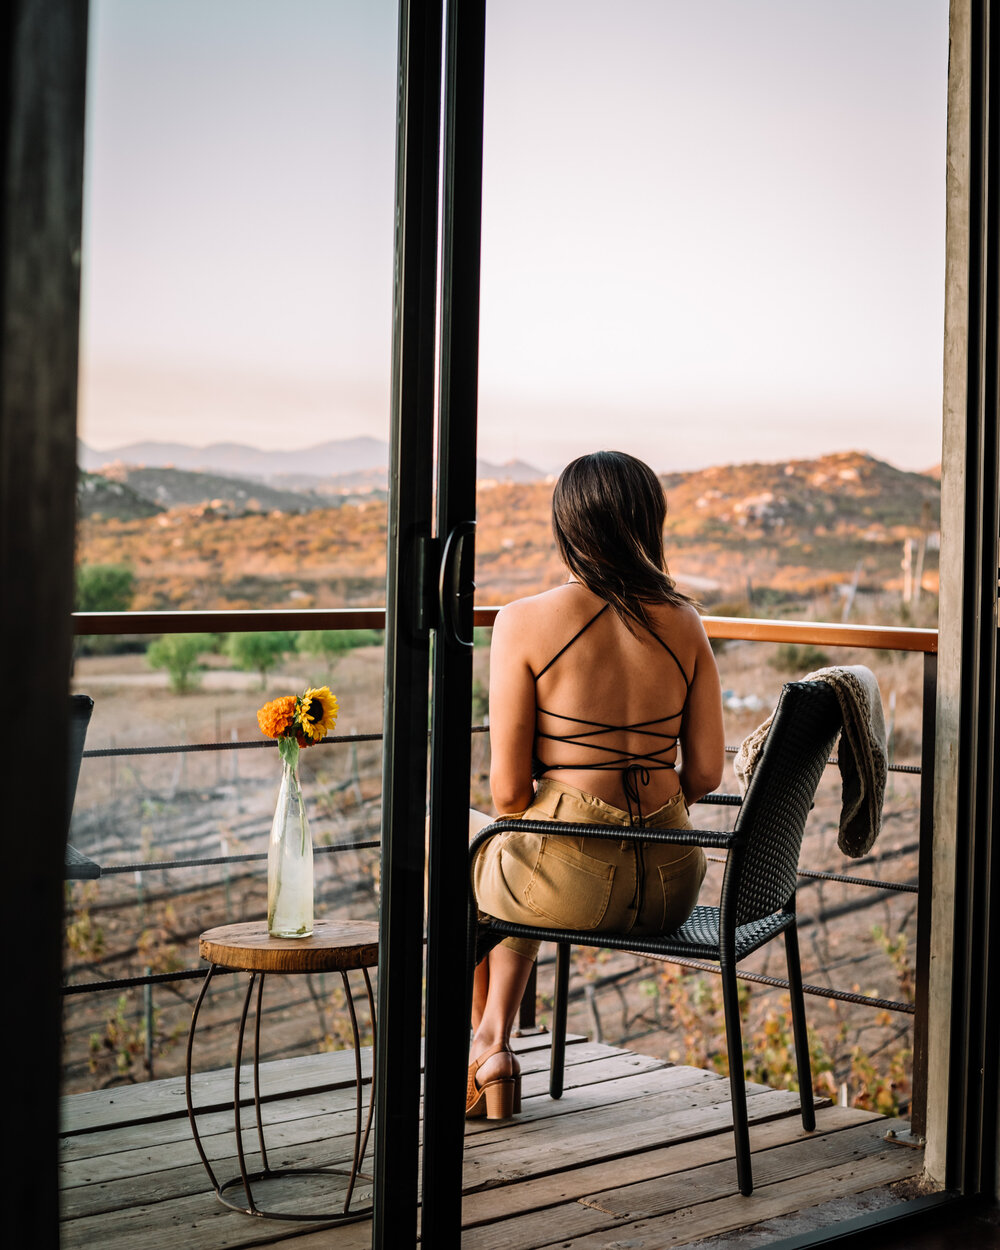 Rachel Off Duty: Woman Looking Out at the Scenery